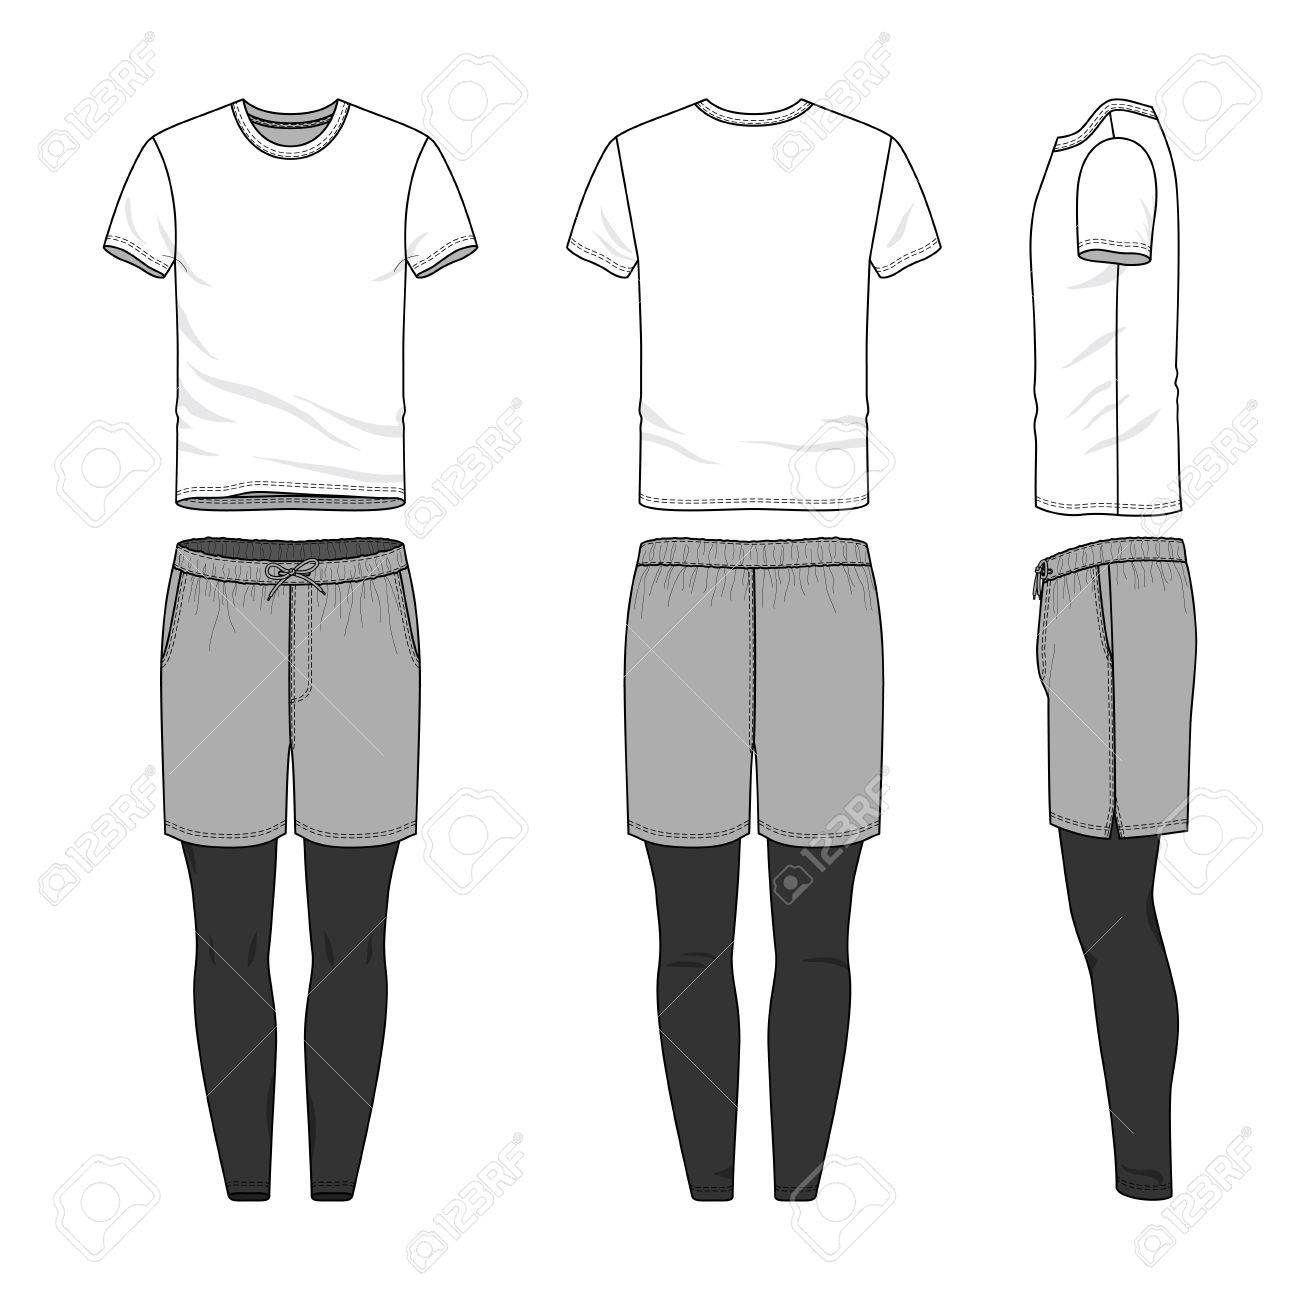 A Vector Templates Of Clothing Set. Front, Back, Side Views Of Blank  T-shirt, Sports Shorts, Jogging Pants. Shirt With Raglan Sleeves.  Sportswear, Uniform Clothes. Fashion Illustration. Cliparts, Vector, Và  Stock Hình ảnh